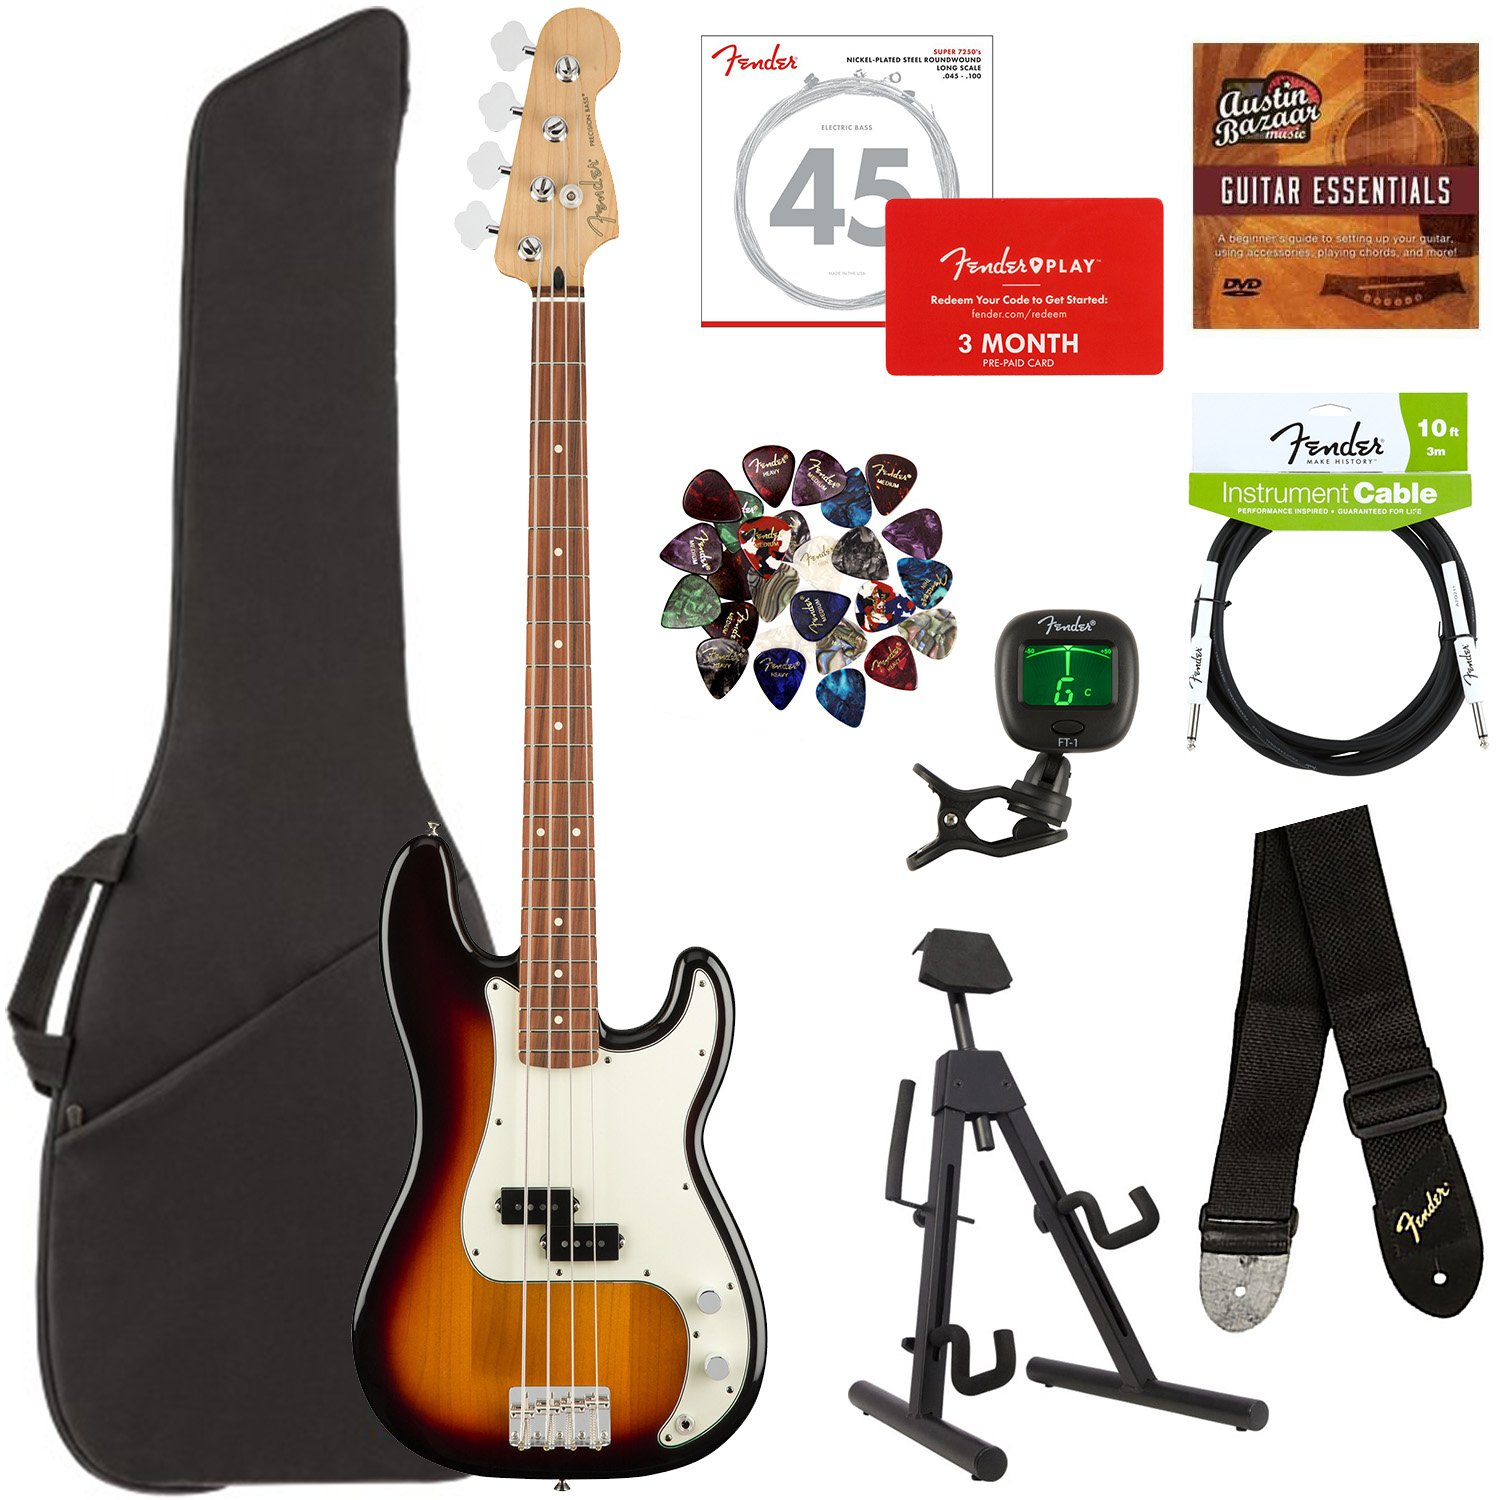 Fender Player Precision Bass, Pau Ferro - 3-Color Sunburst Bundle with Gig Bag, Stand, Cable, Tuner, Strap, Strings, Picks, Fender Play Online Lessons, and Austin Bazaar Instructional DVD